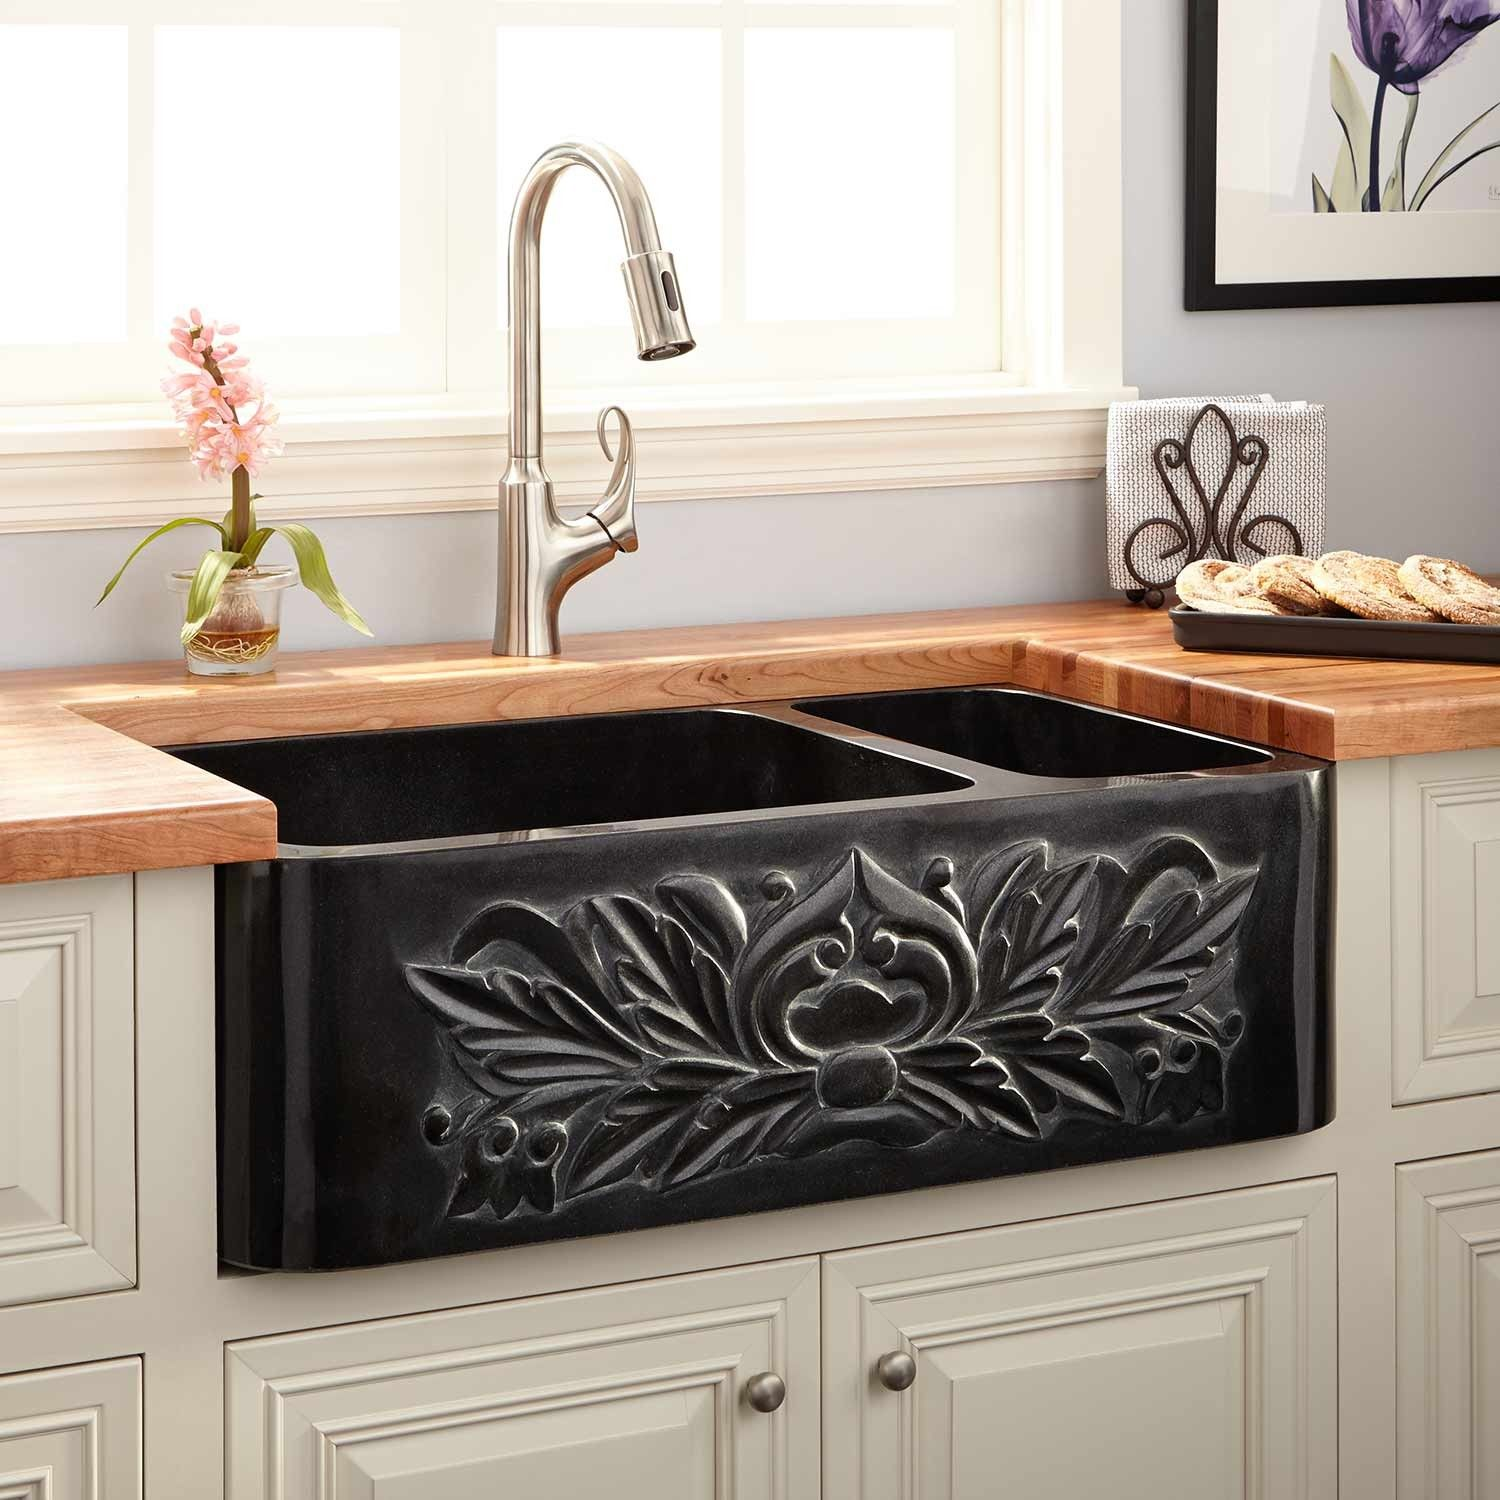 33 X 20 X 10 Ivy Natural Granite Large Offset Double Bowl Farmhouse Sink Polished Design And Polis Farmhouse Sink Stone Farmhouse Sink Black Farmhouse Sink